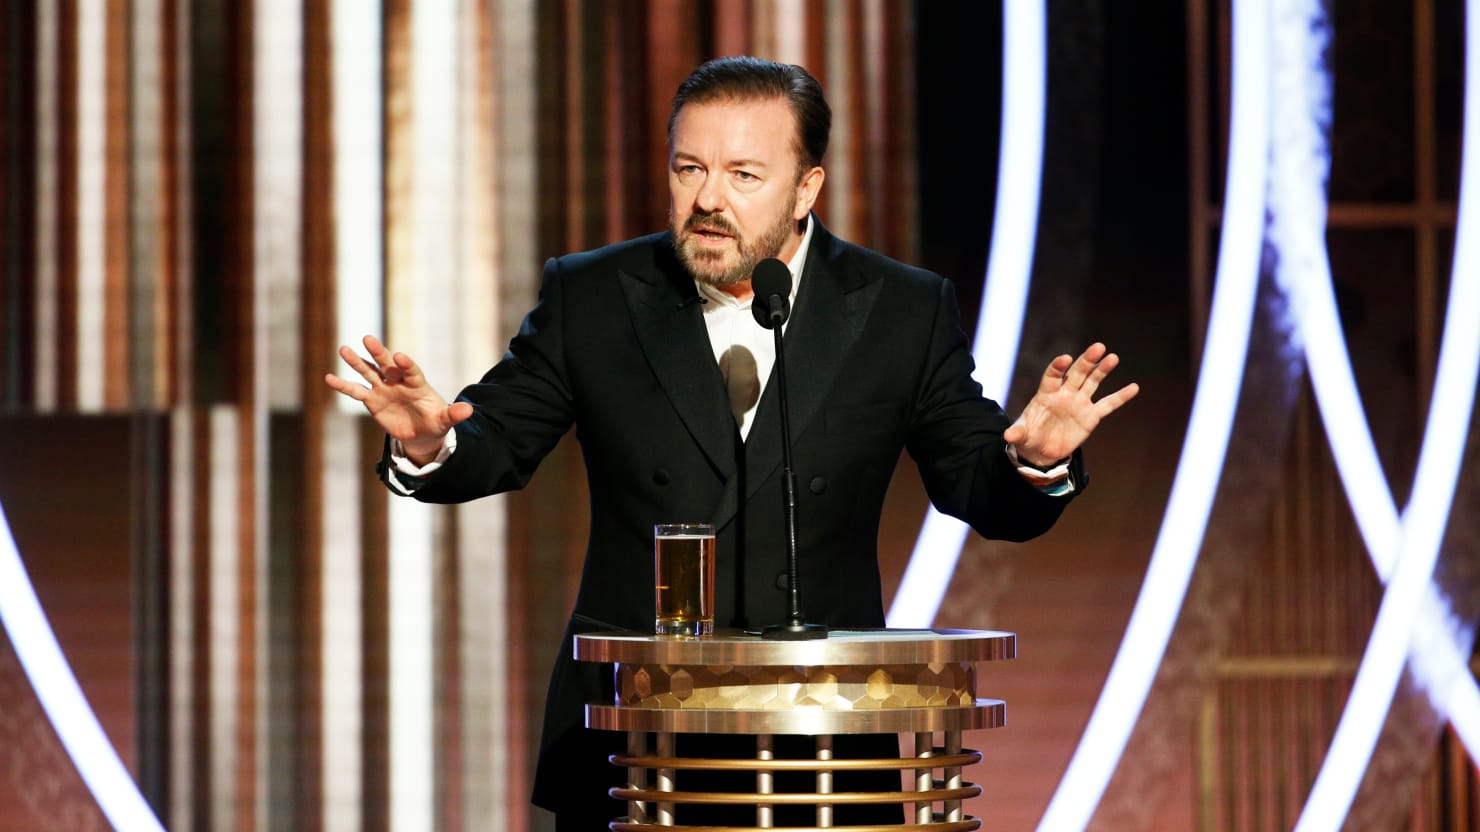 Ricky-Gervais-Golden-Globes-monologue-mocks-Jeffrey-Epsteins-Hollywood-ties